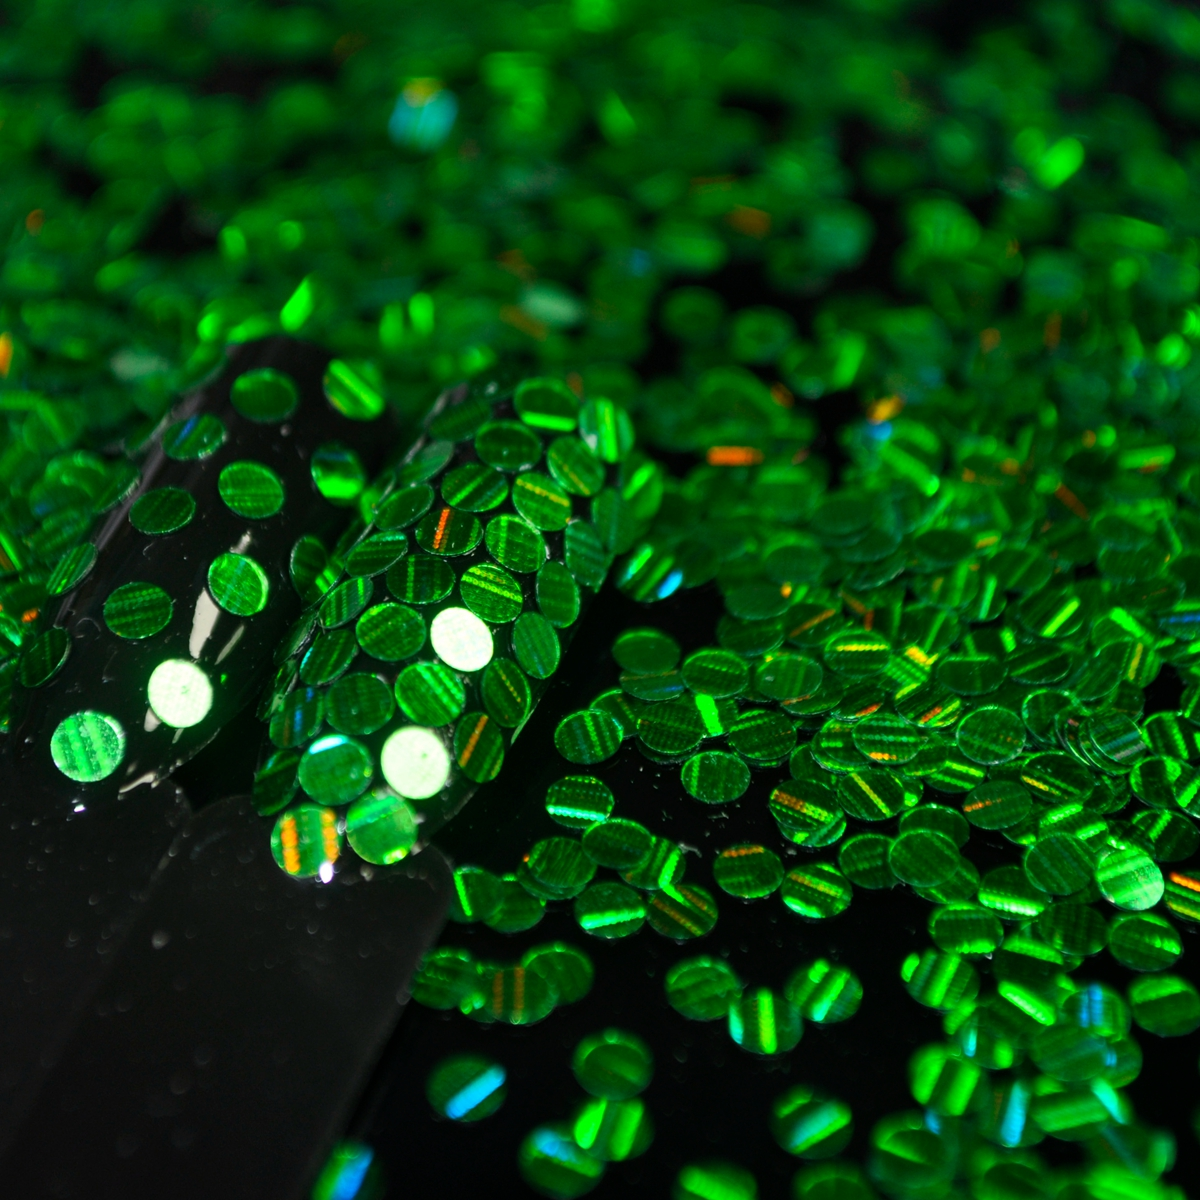 2.5mm Nail Round Sequins Laser Green Stripe DIY Nail Art Glitter Seqiuns Full Cover Nails Tips D8067